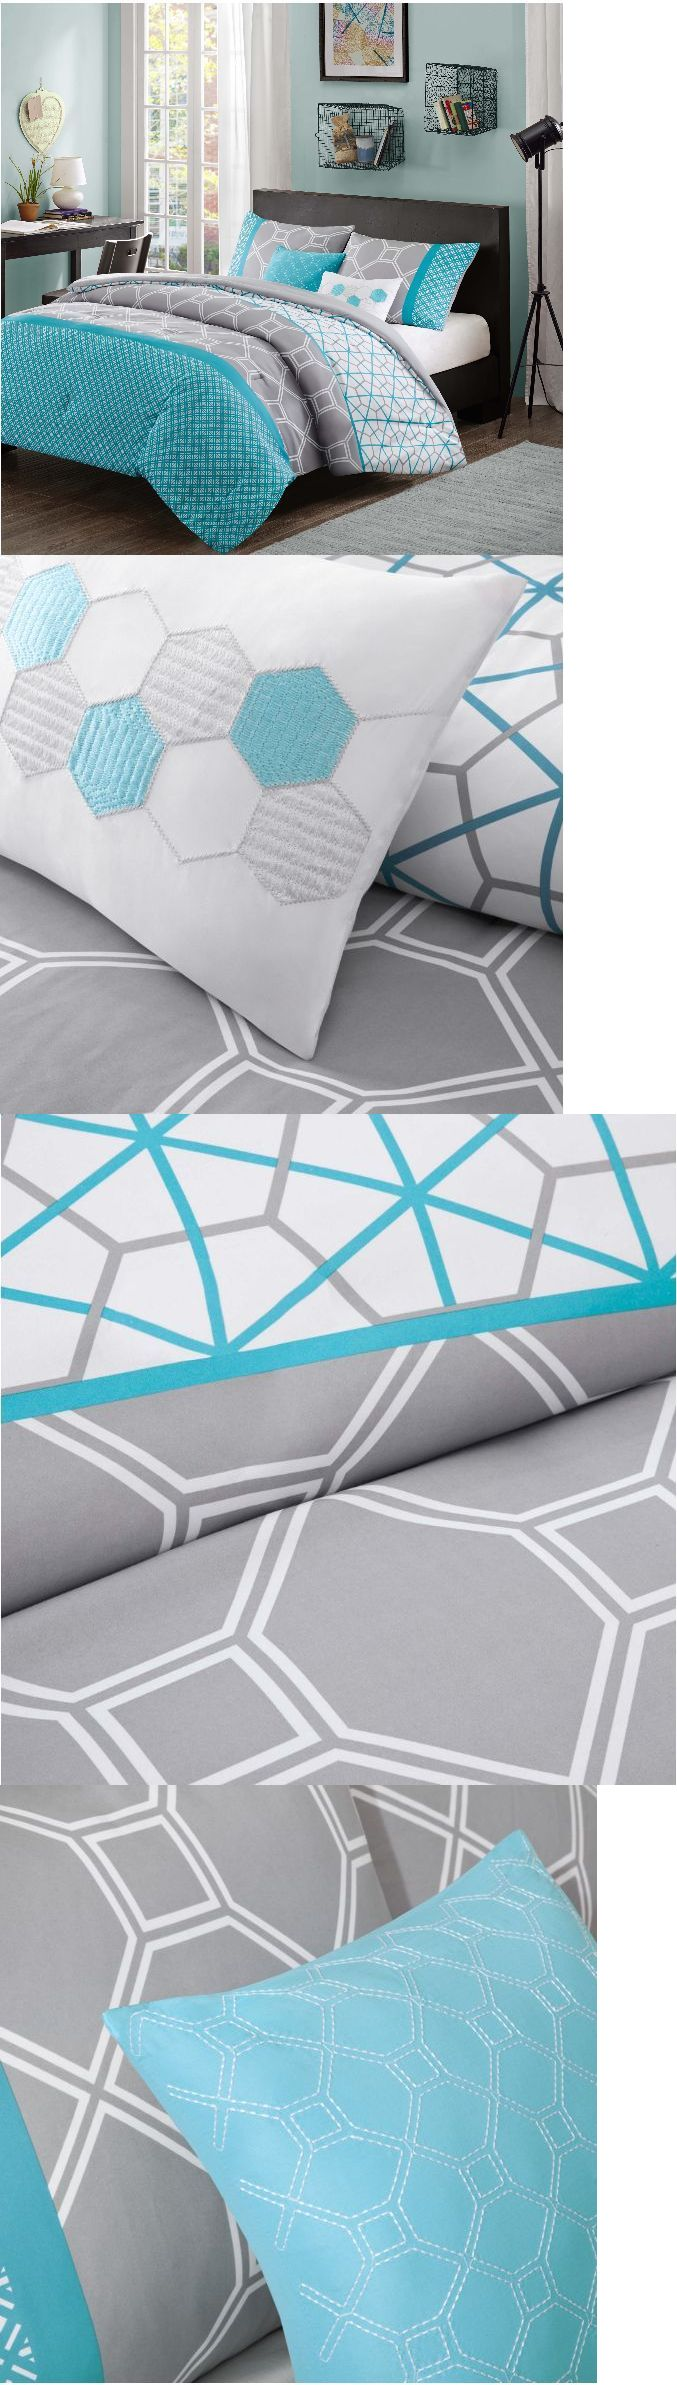 Blue bedroom sets for girls - Kids Bedding Bedding Sets For Teens Kids Comforter Girls Aqua Blue Gray Full Queen Twin